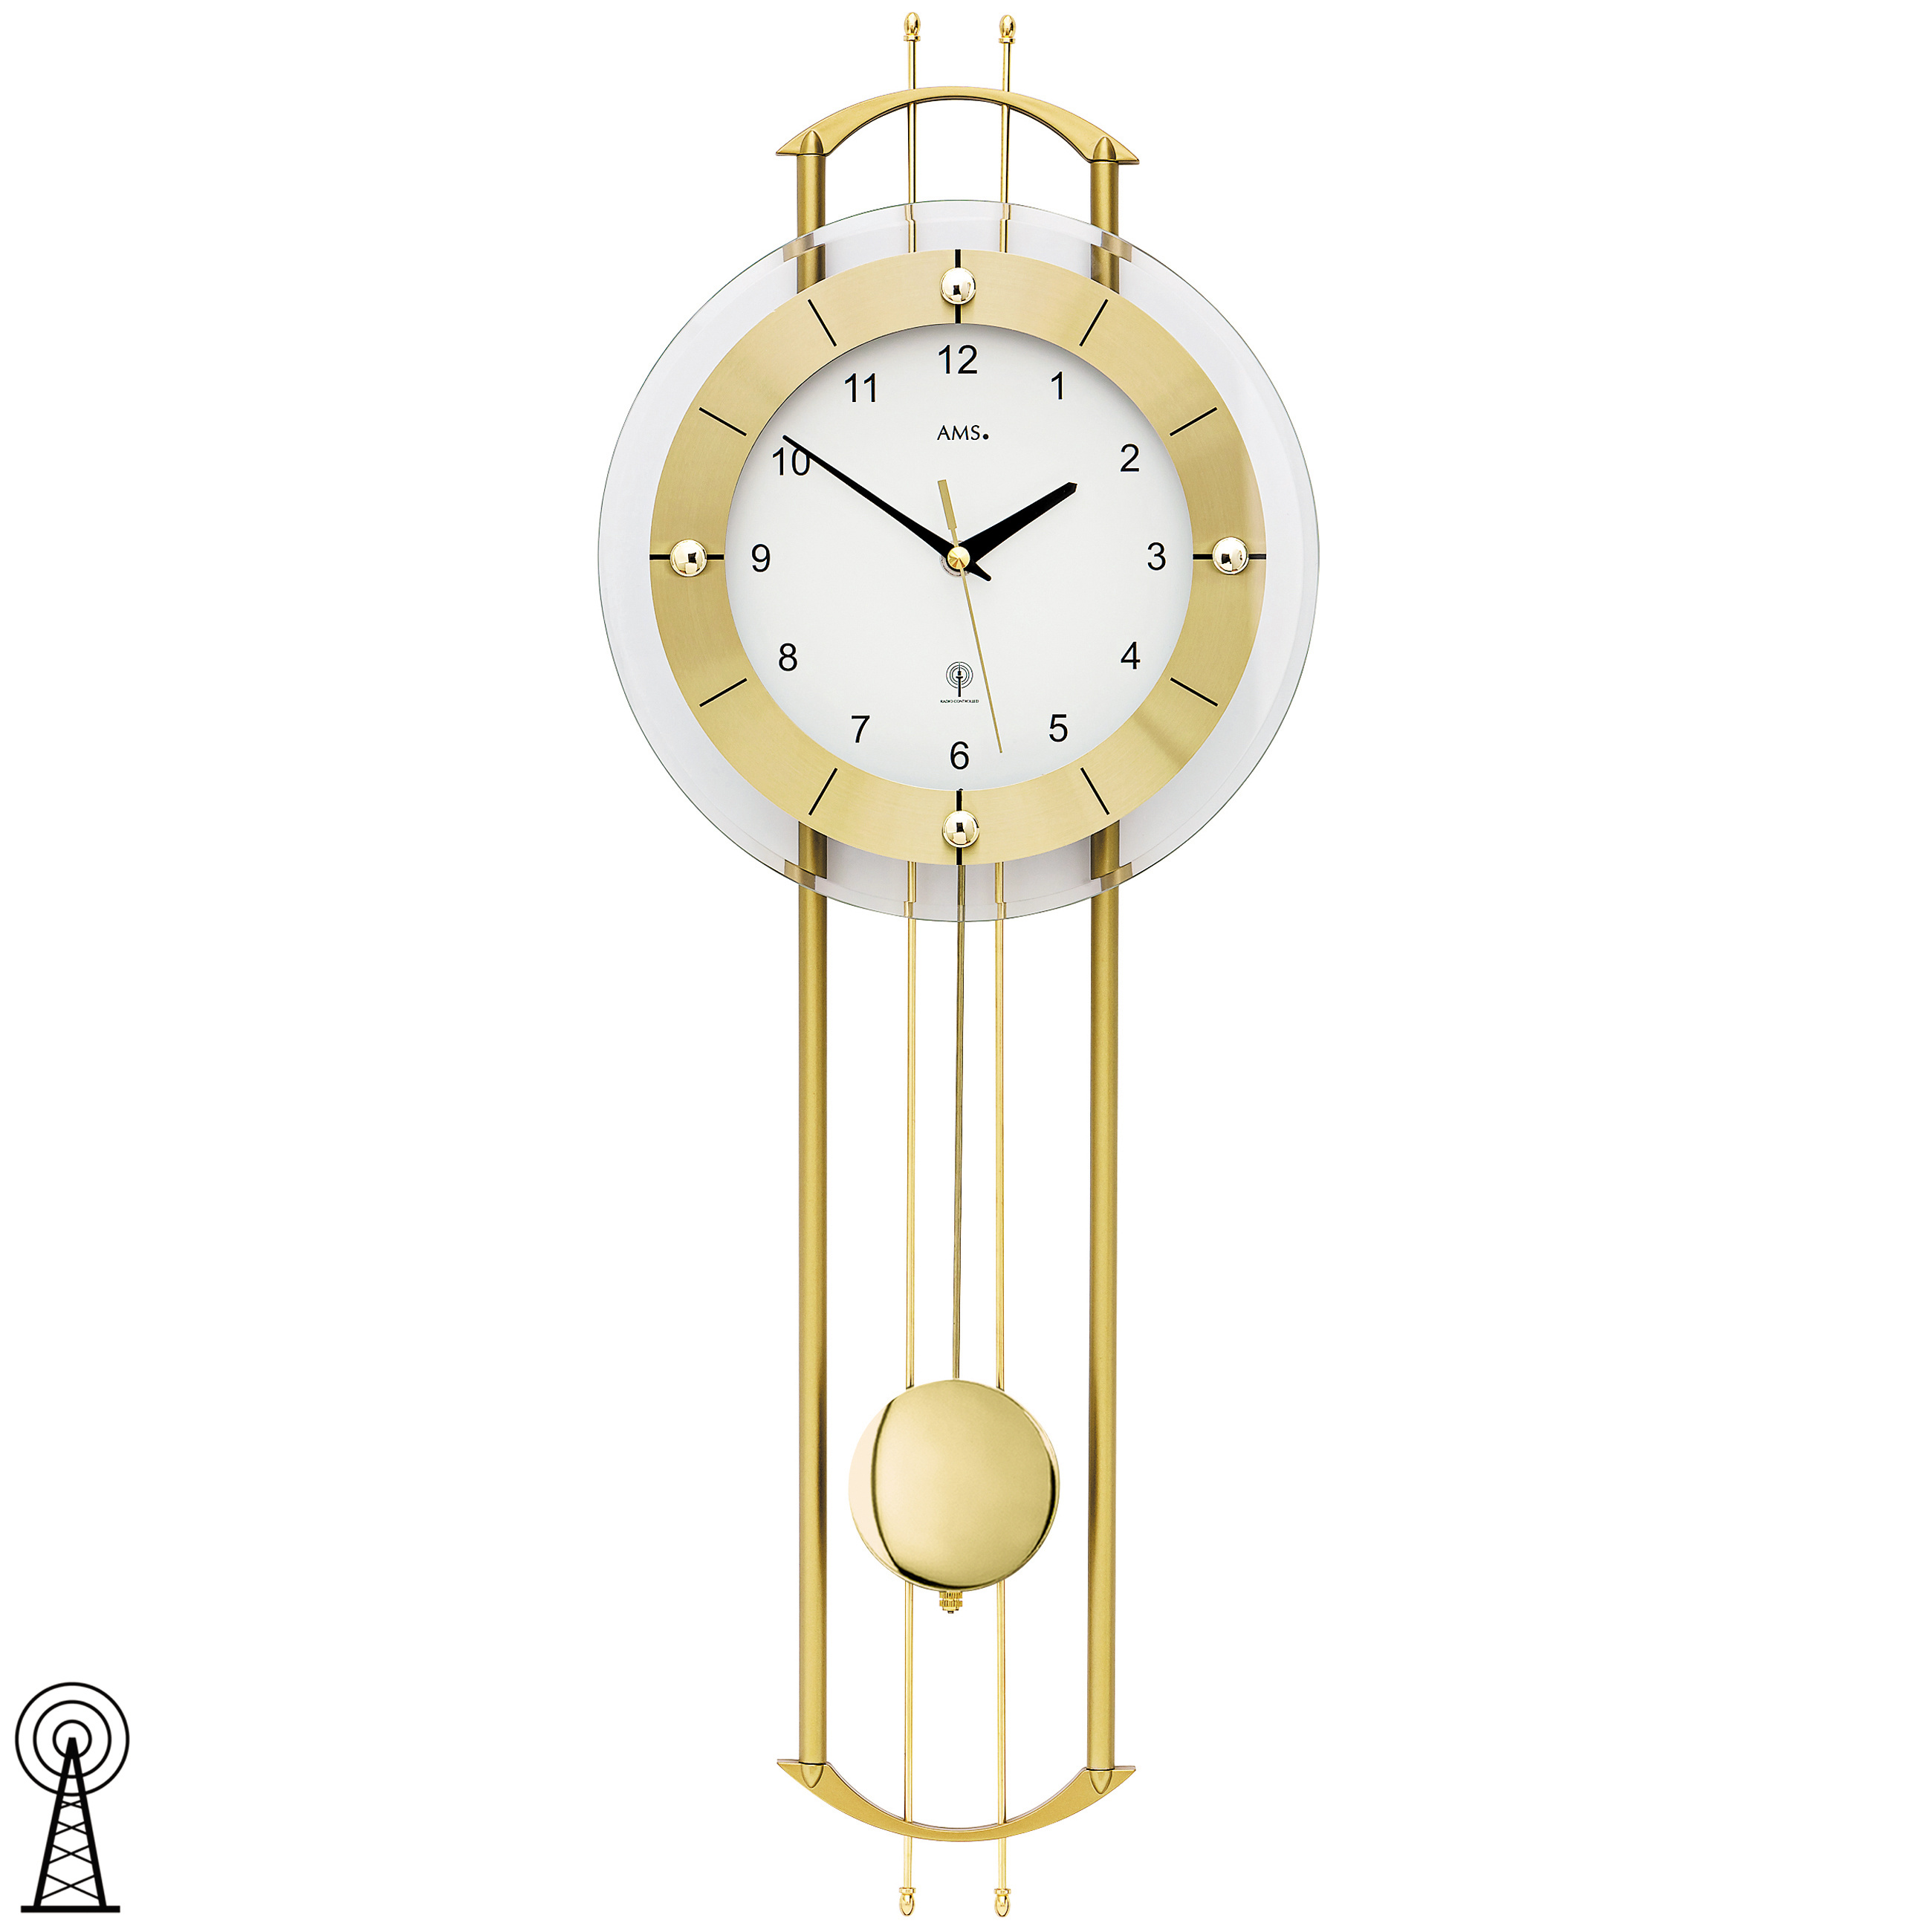 ams 5257 wanduhr funk funkwanduhr mit pendel golden modern pendeluhr mit glas 4037445151697 ebay. Black Bedroom Furniture Sets. Home Design Ideas